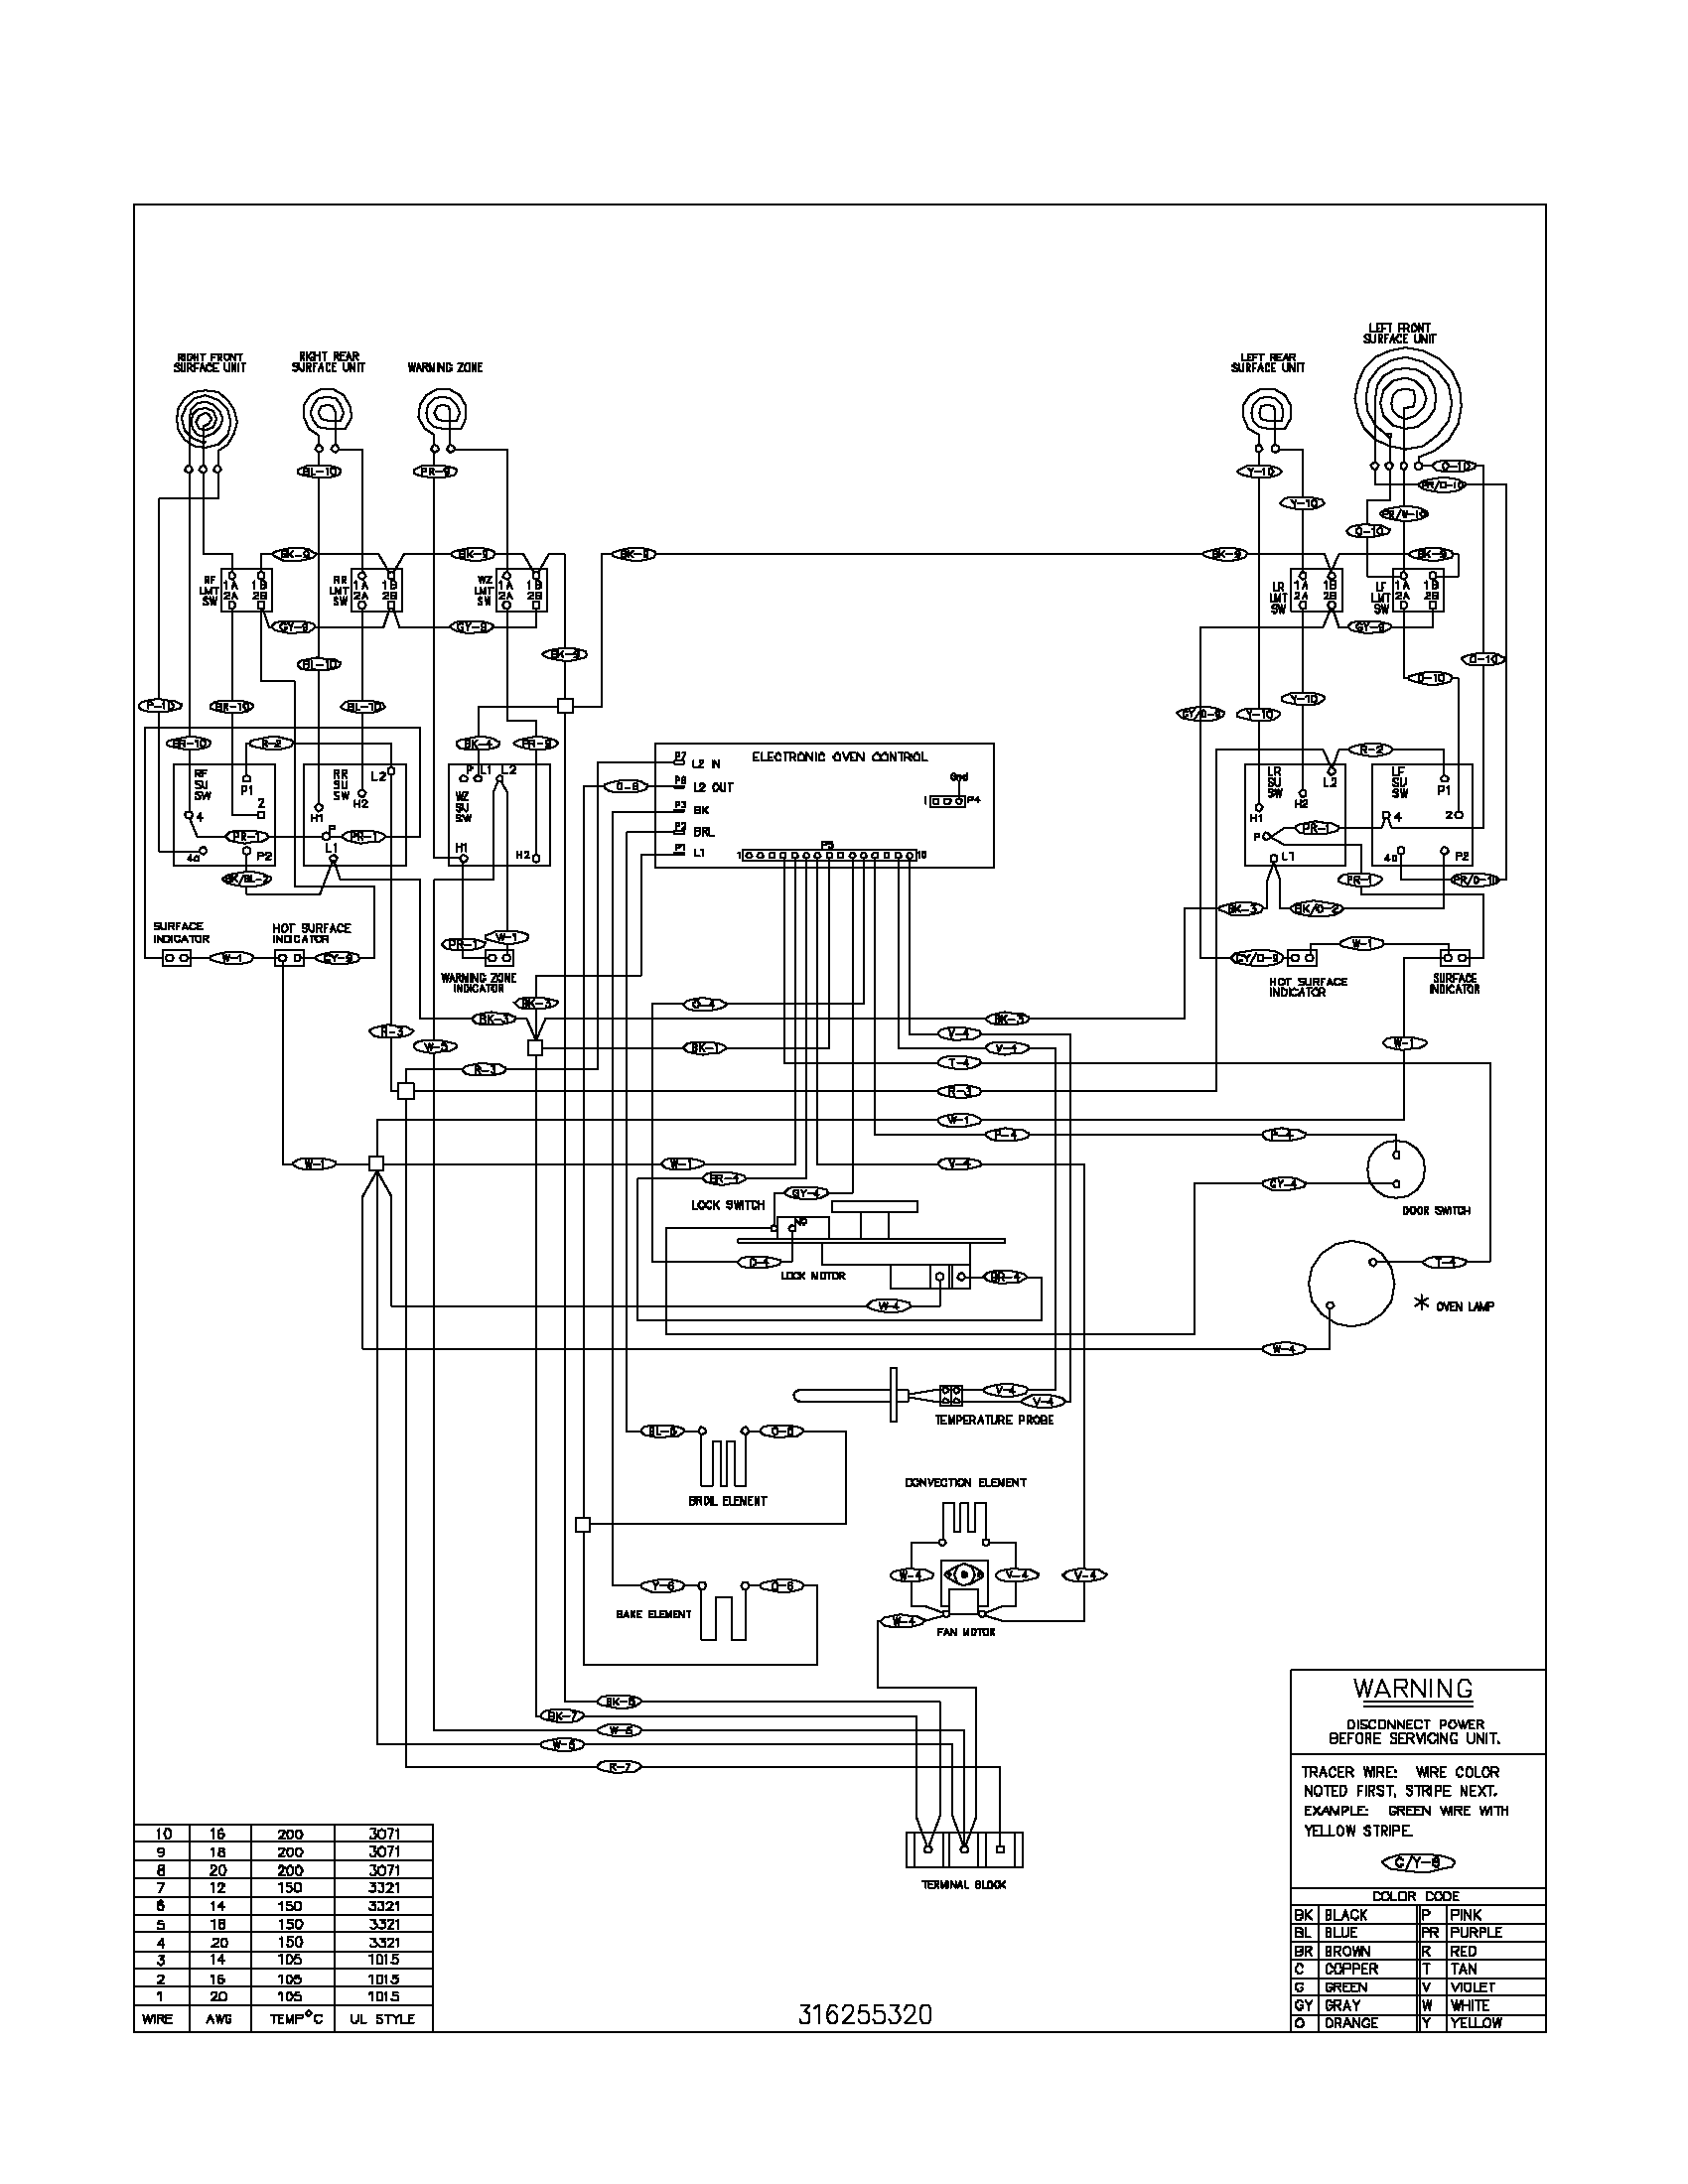 whirlpool dishwasher motor wiring diagram